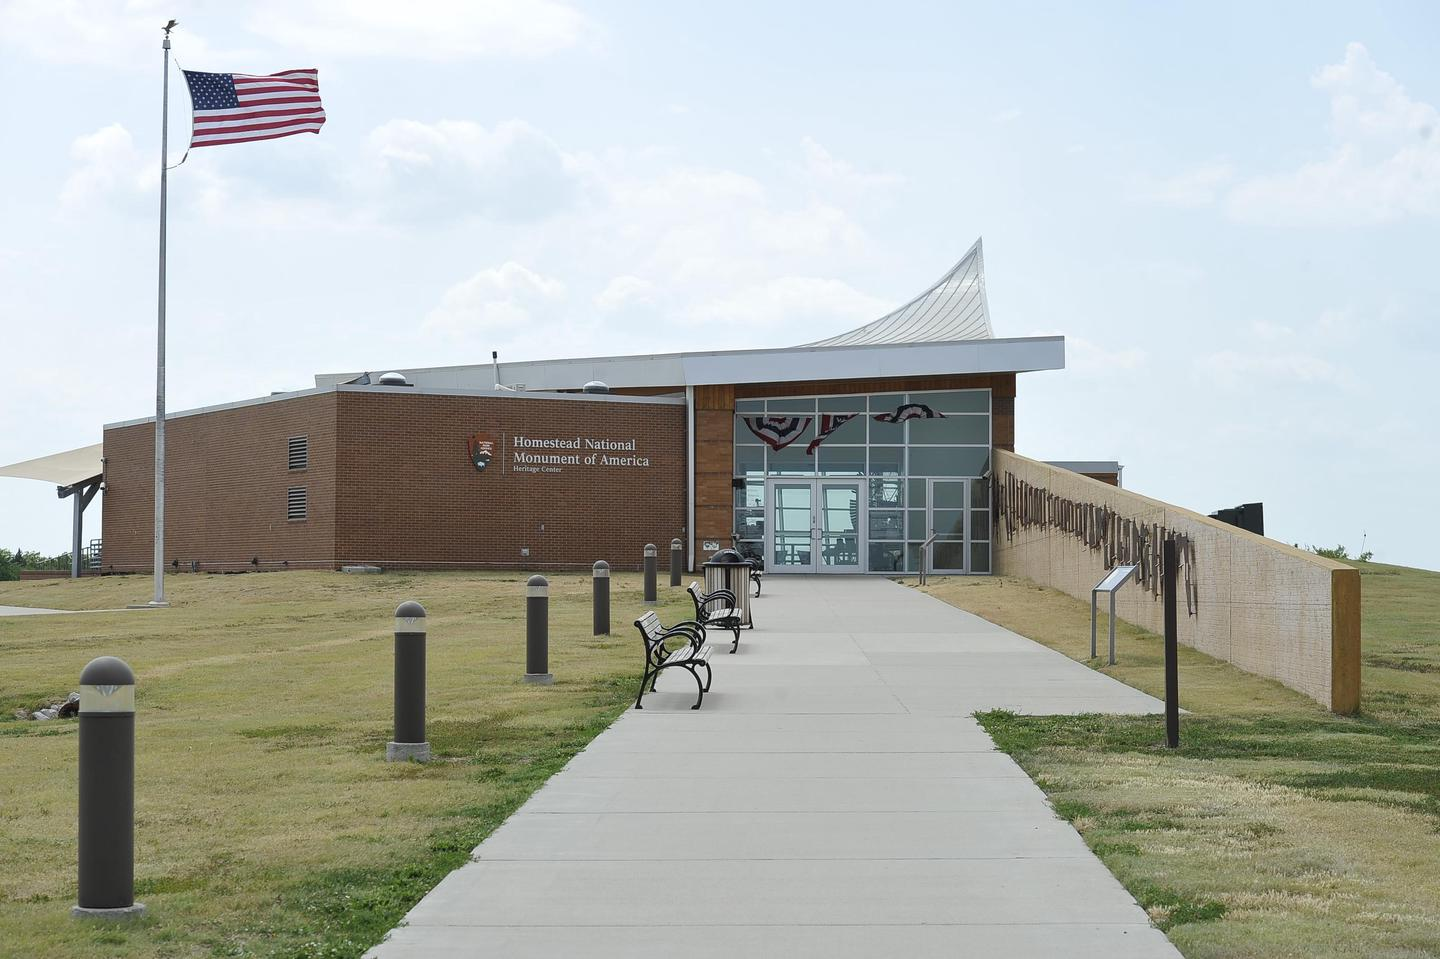 Heritage Center EntranceThe walkway to the Heritage Center includes a wall with each homestead state represented.